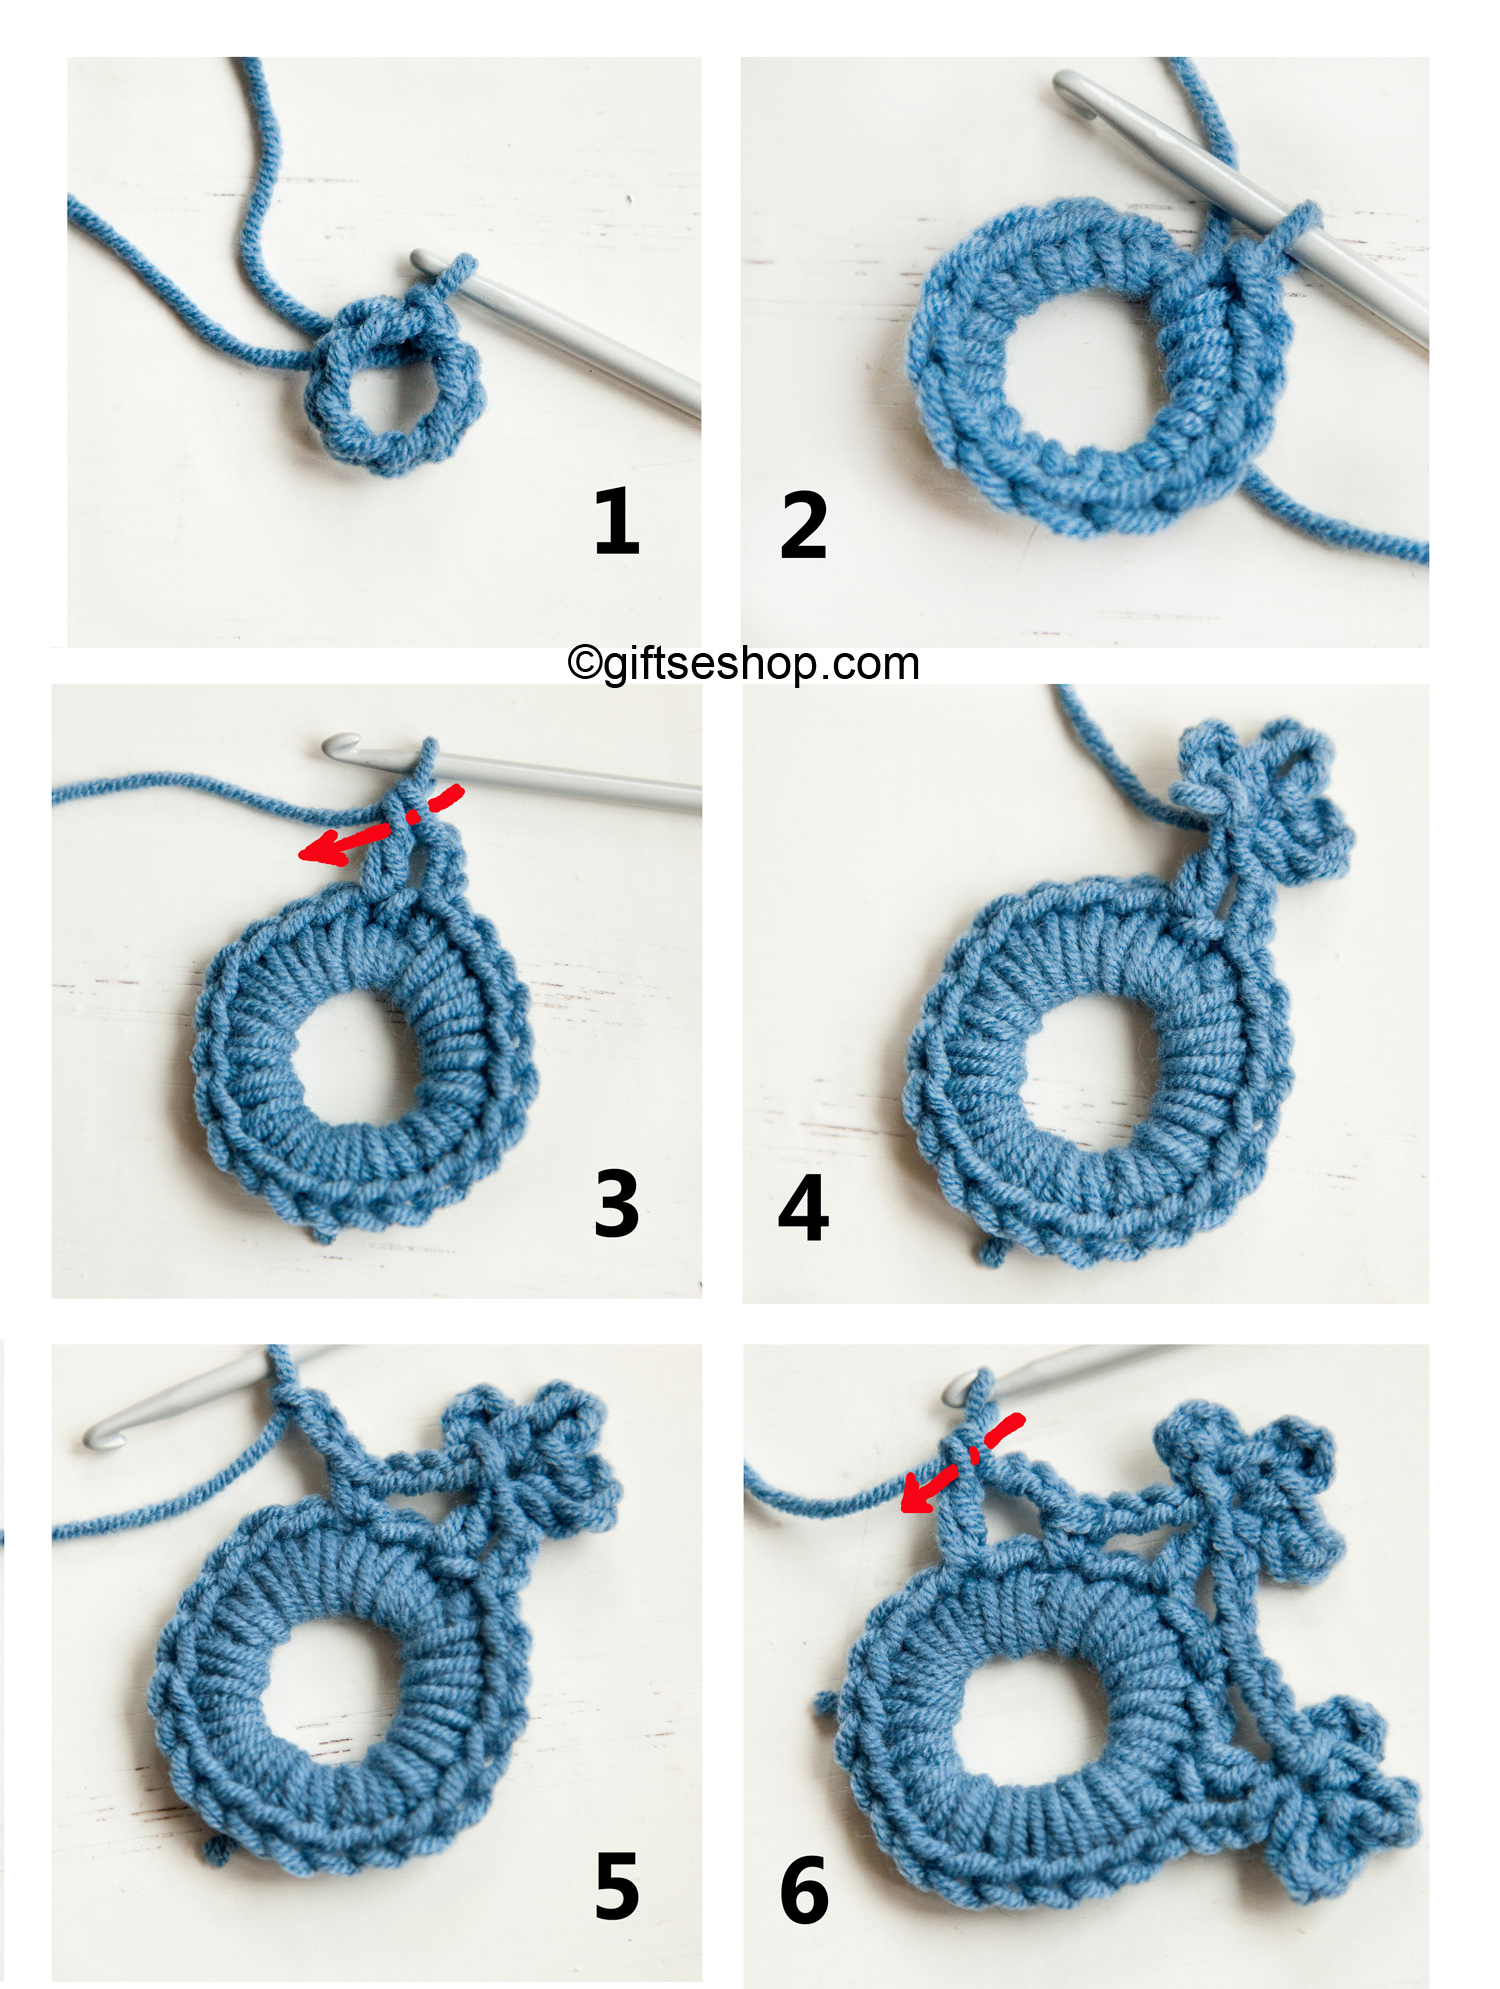 Crochet free patterns – Gifts shop